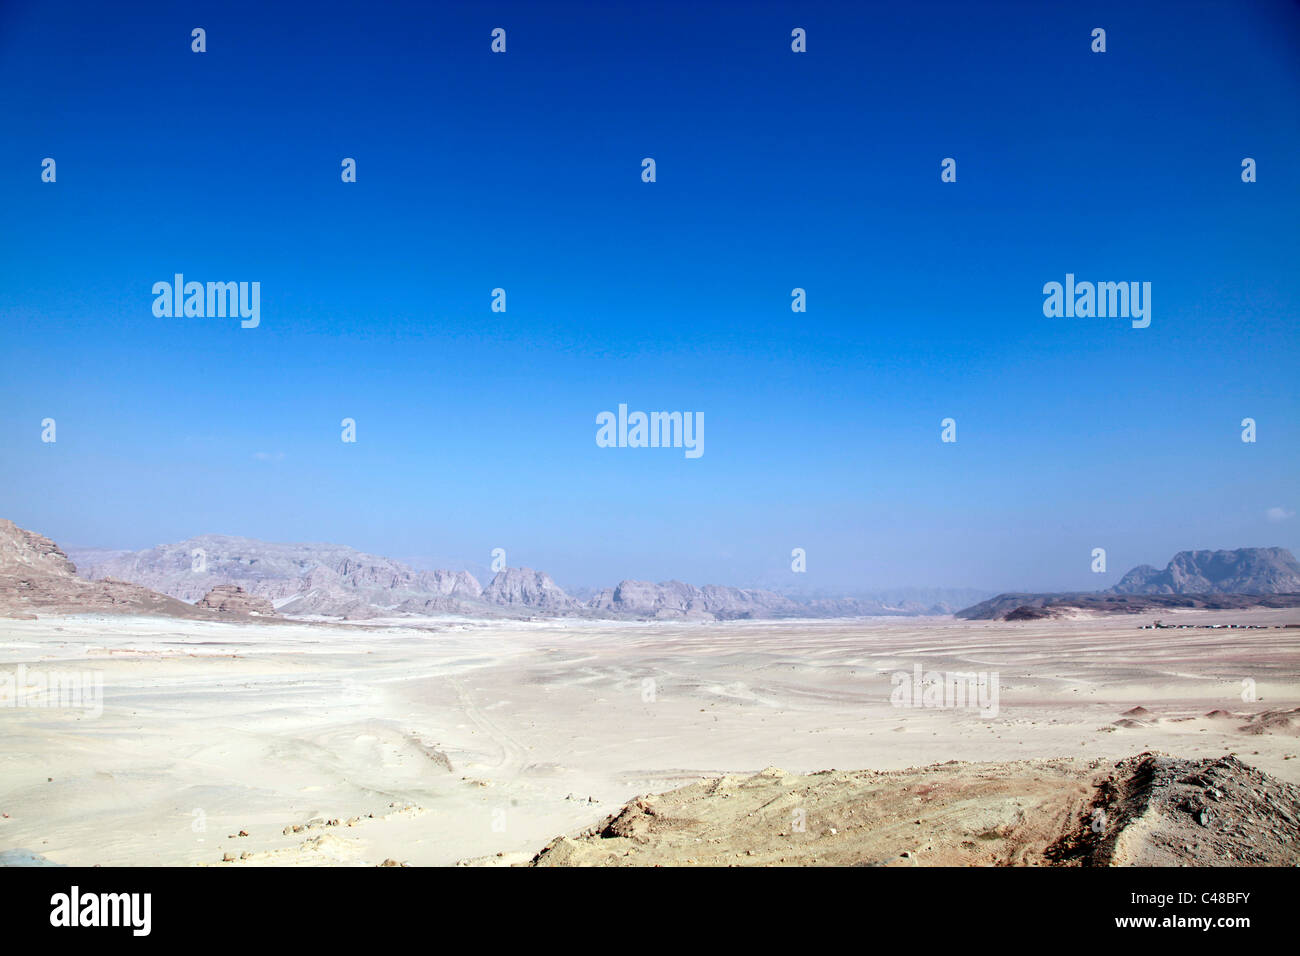 Mountains and sand in the Sinai Desert, South Sinai Peninsula, Egypt - Stock Image